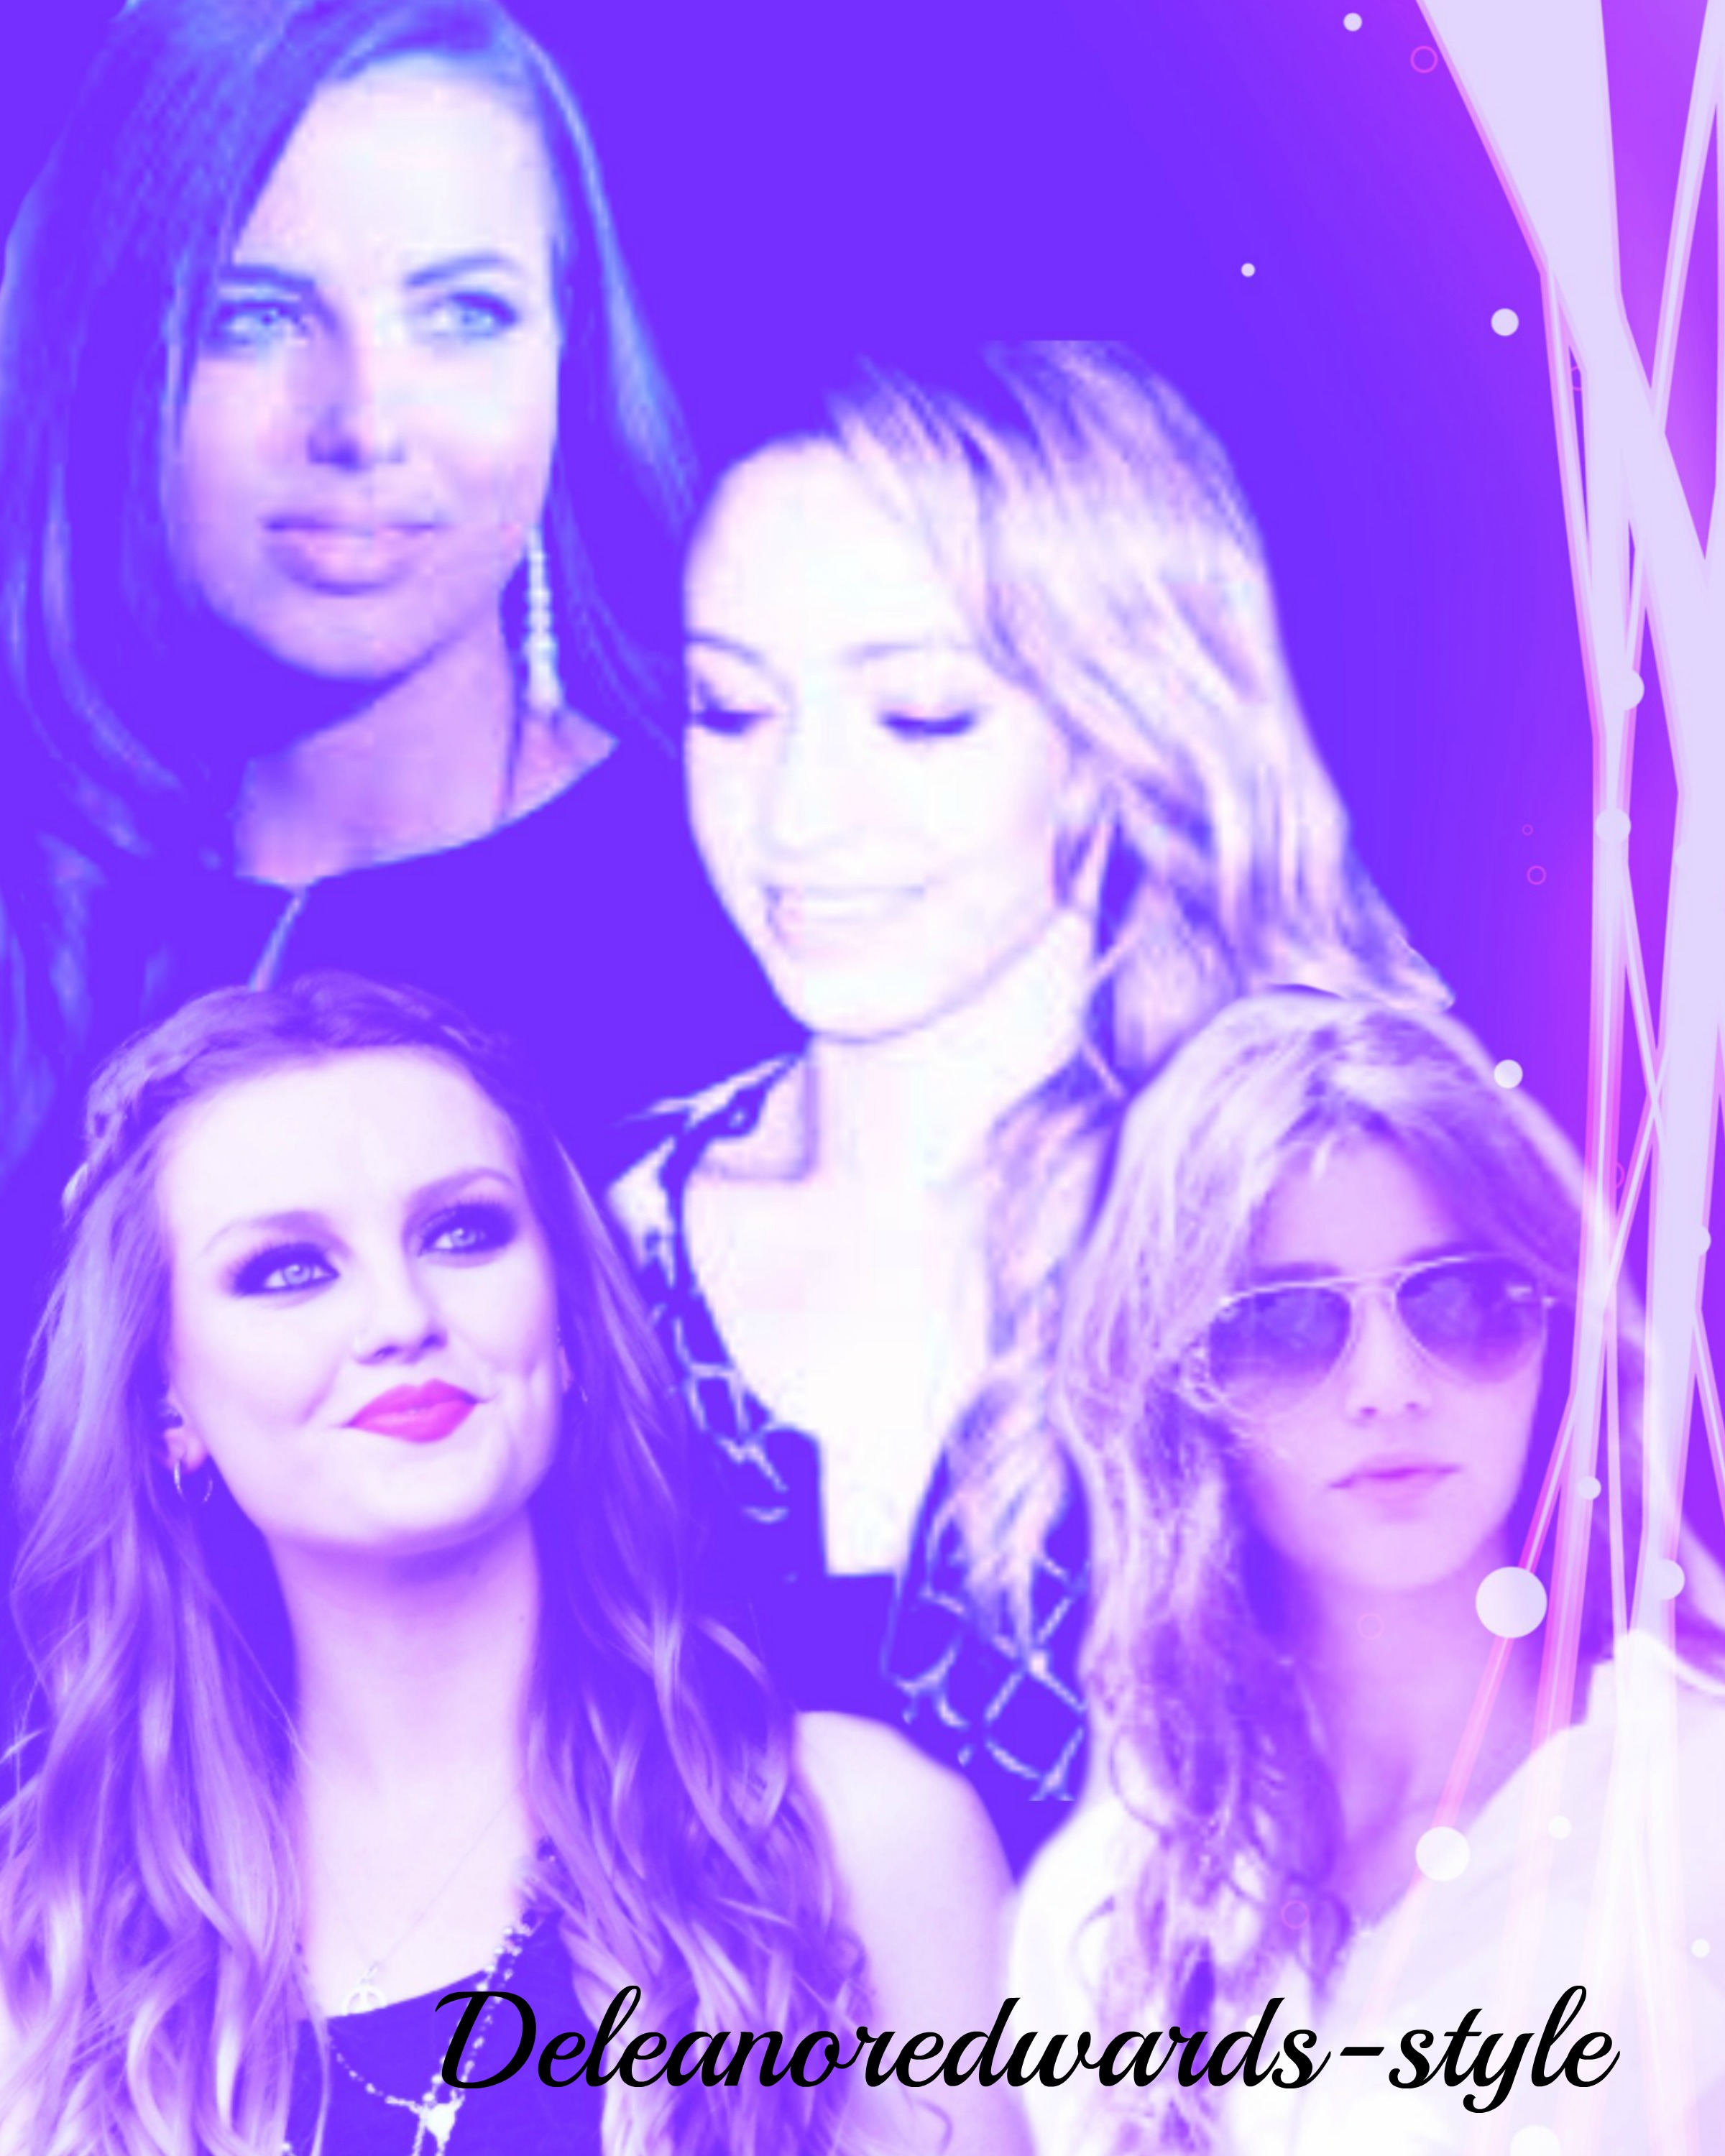 Danielle peazer and eleanor calder and perrie edwards